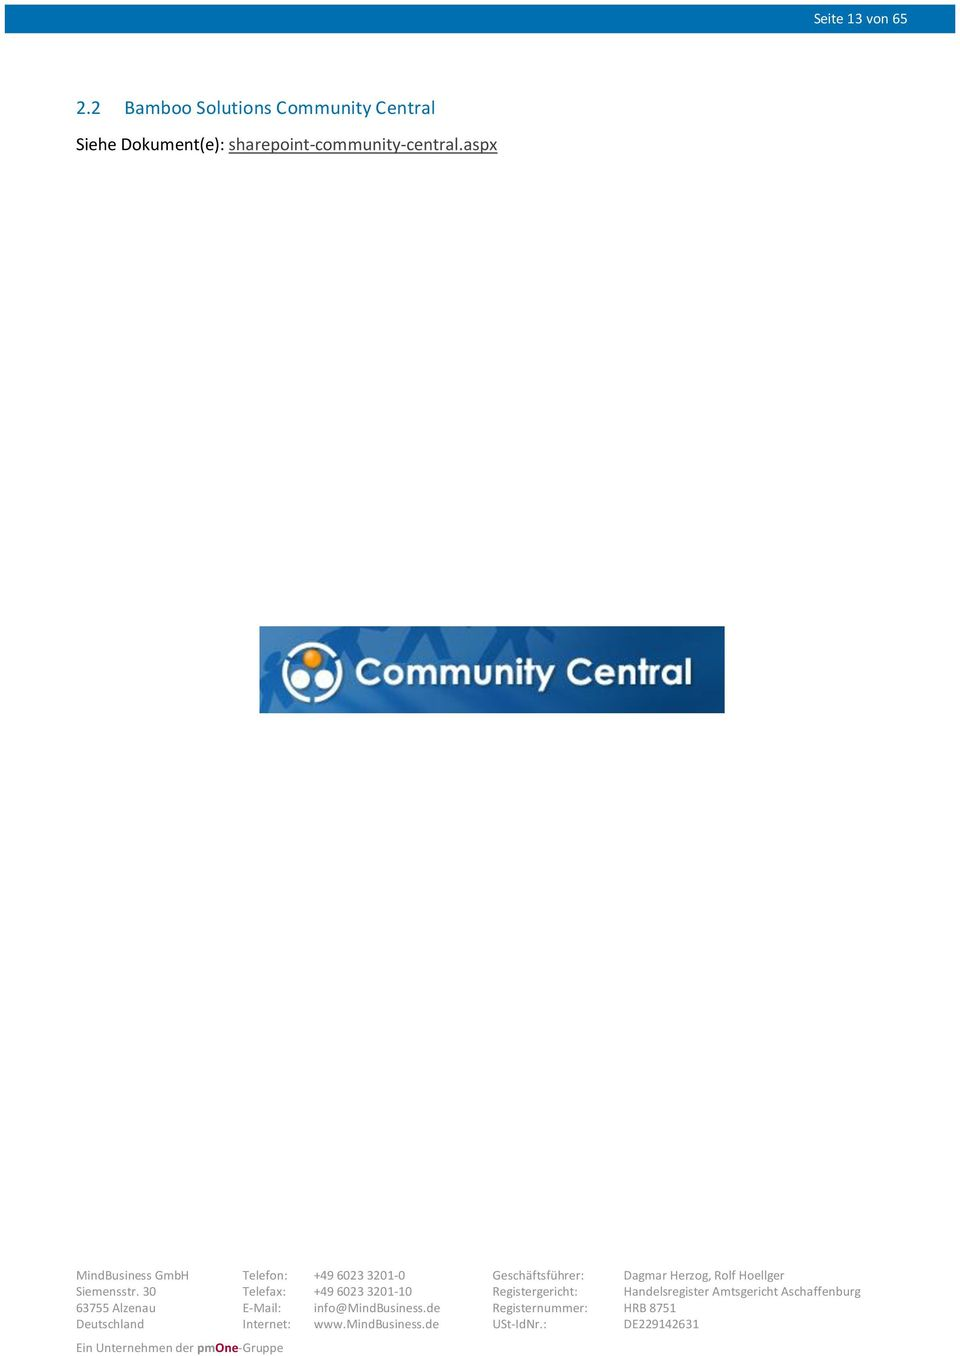 Community Central Siehe